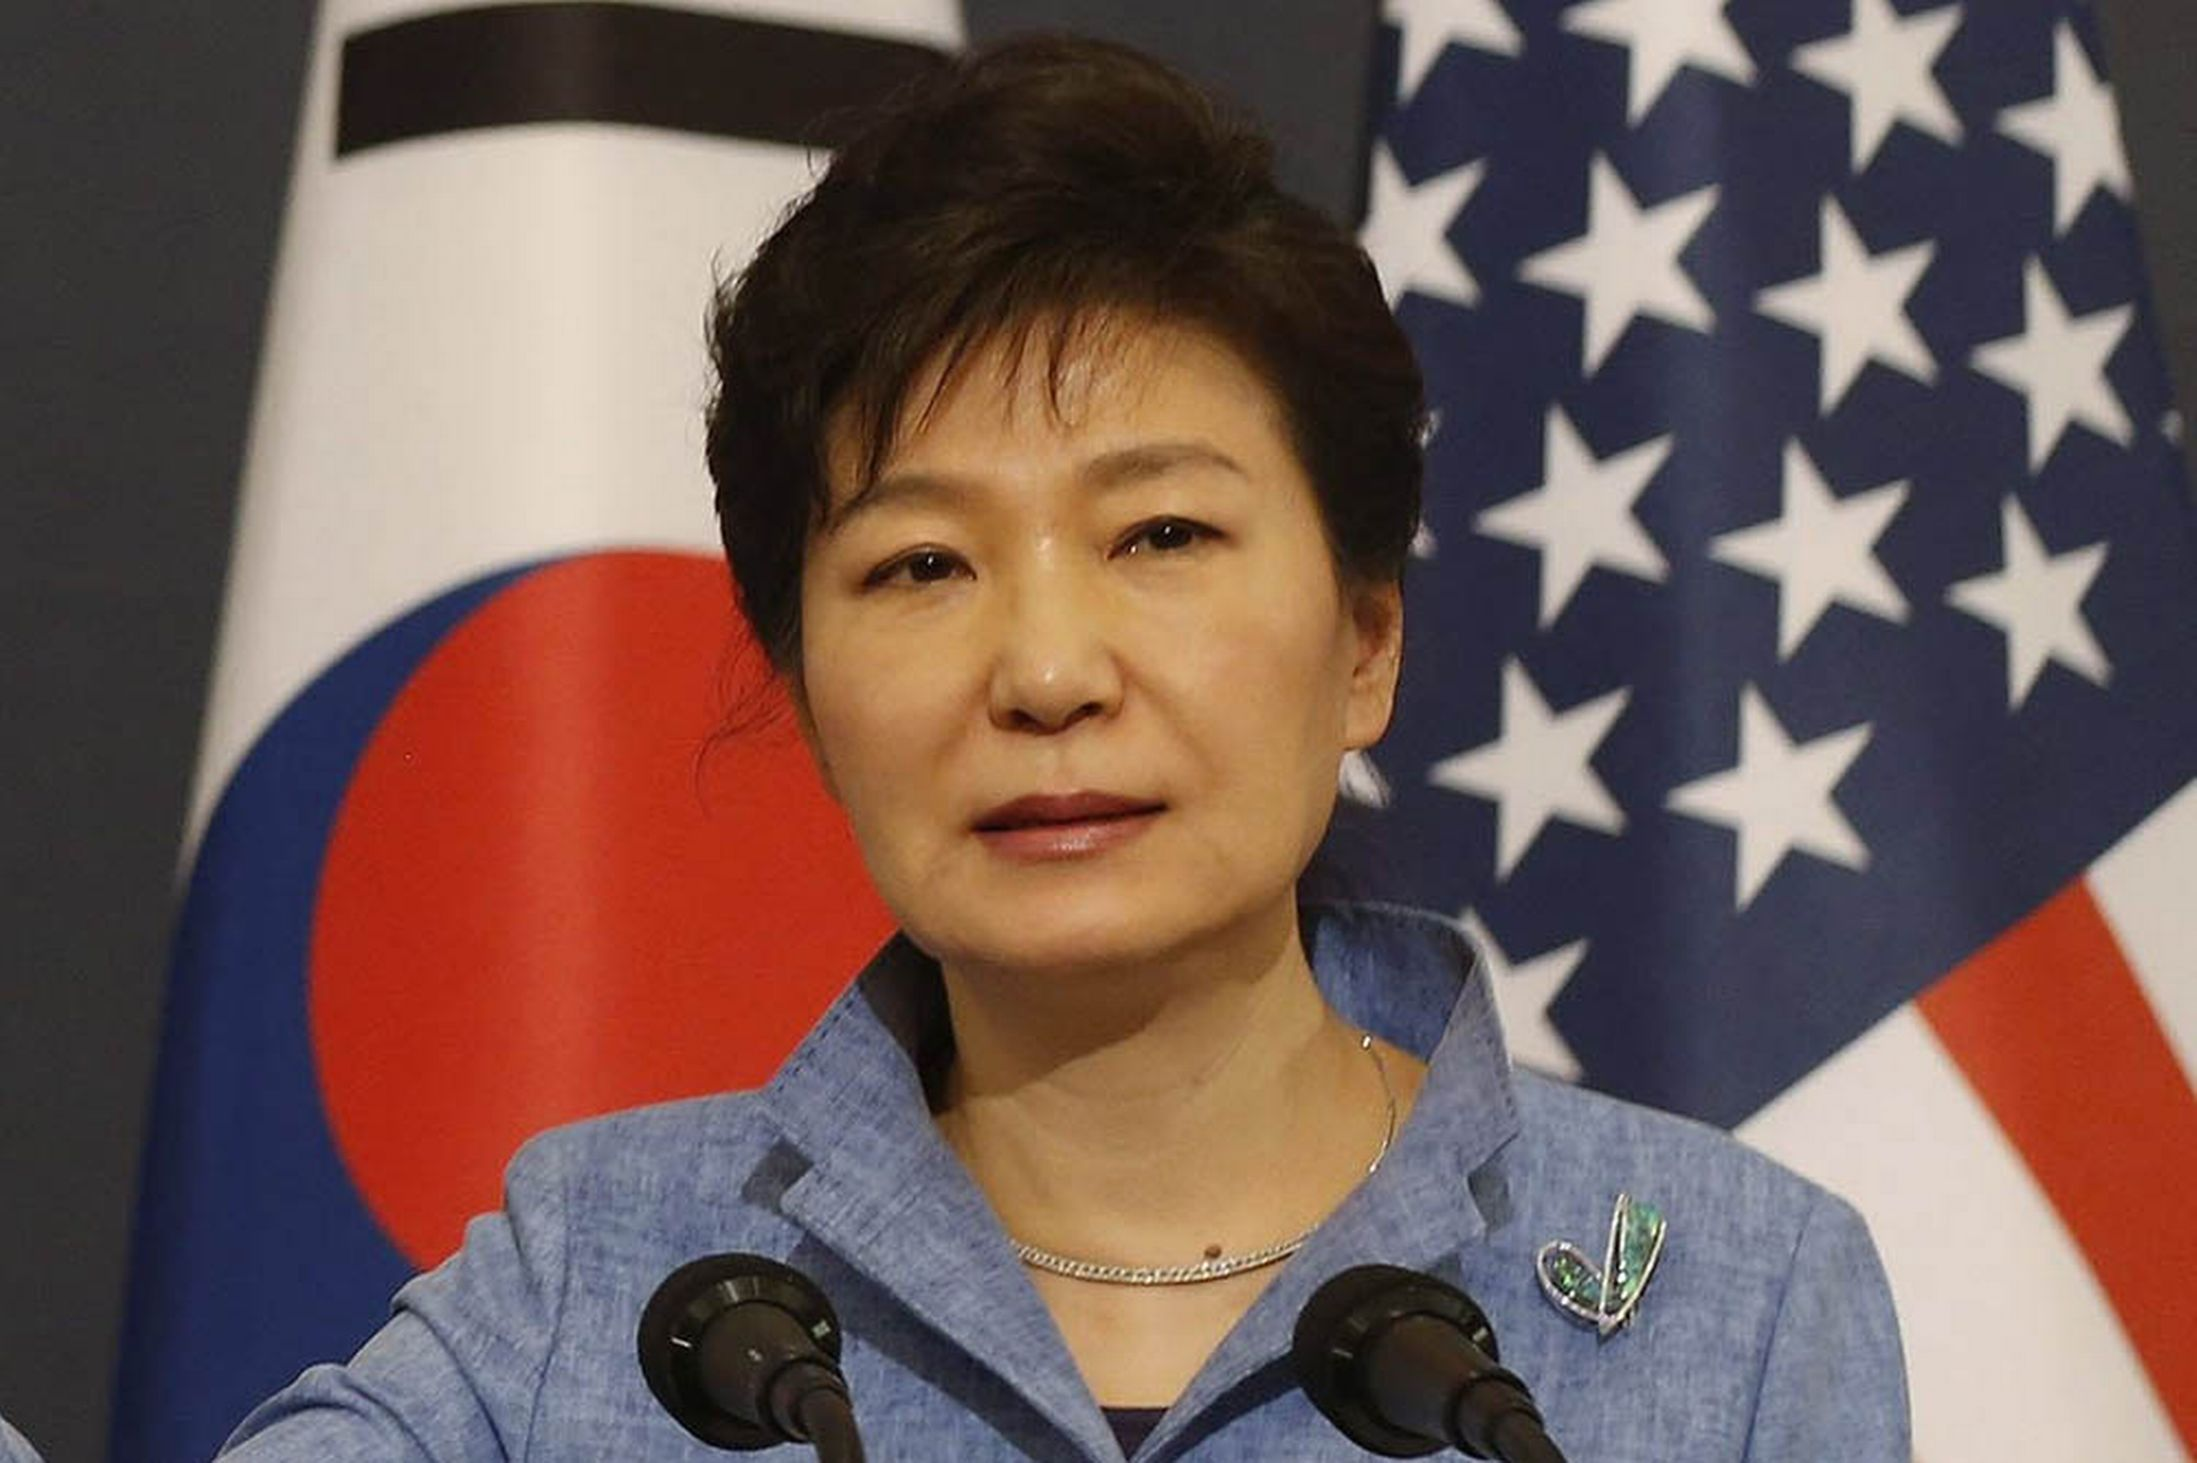 Park Geun-hye earned a  million dollar salary - leaving the net worth at 1 million in 2018